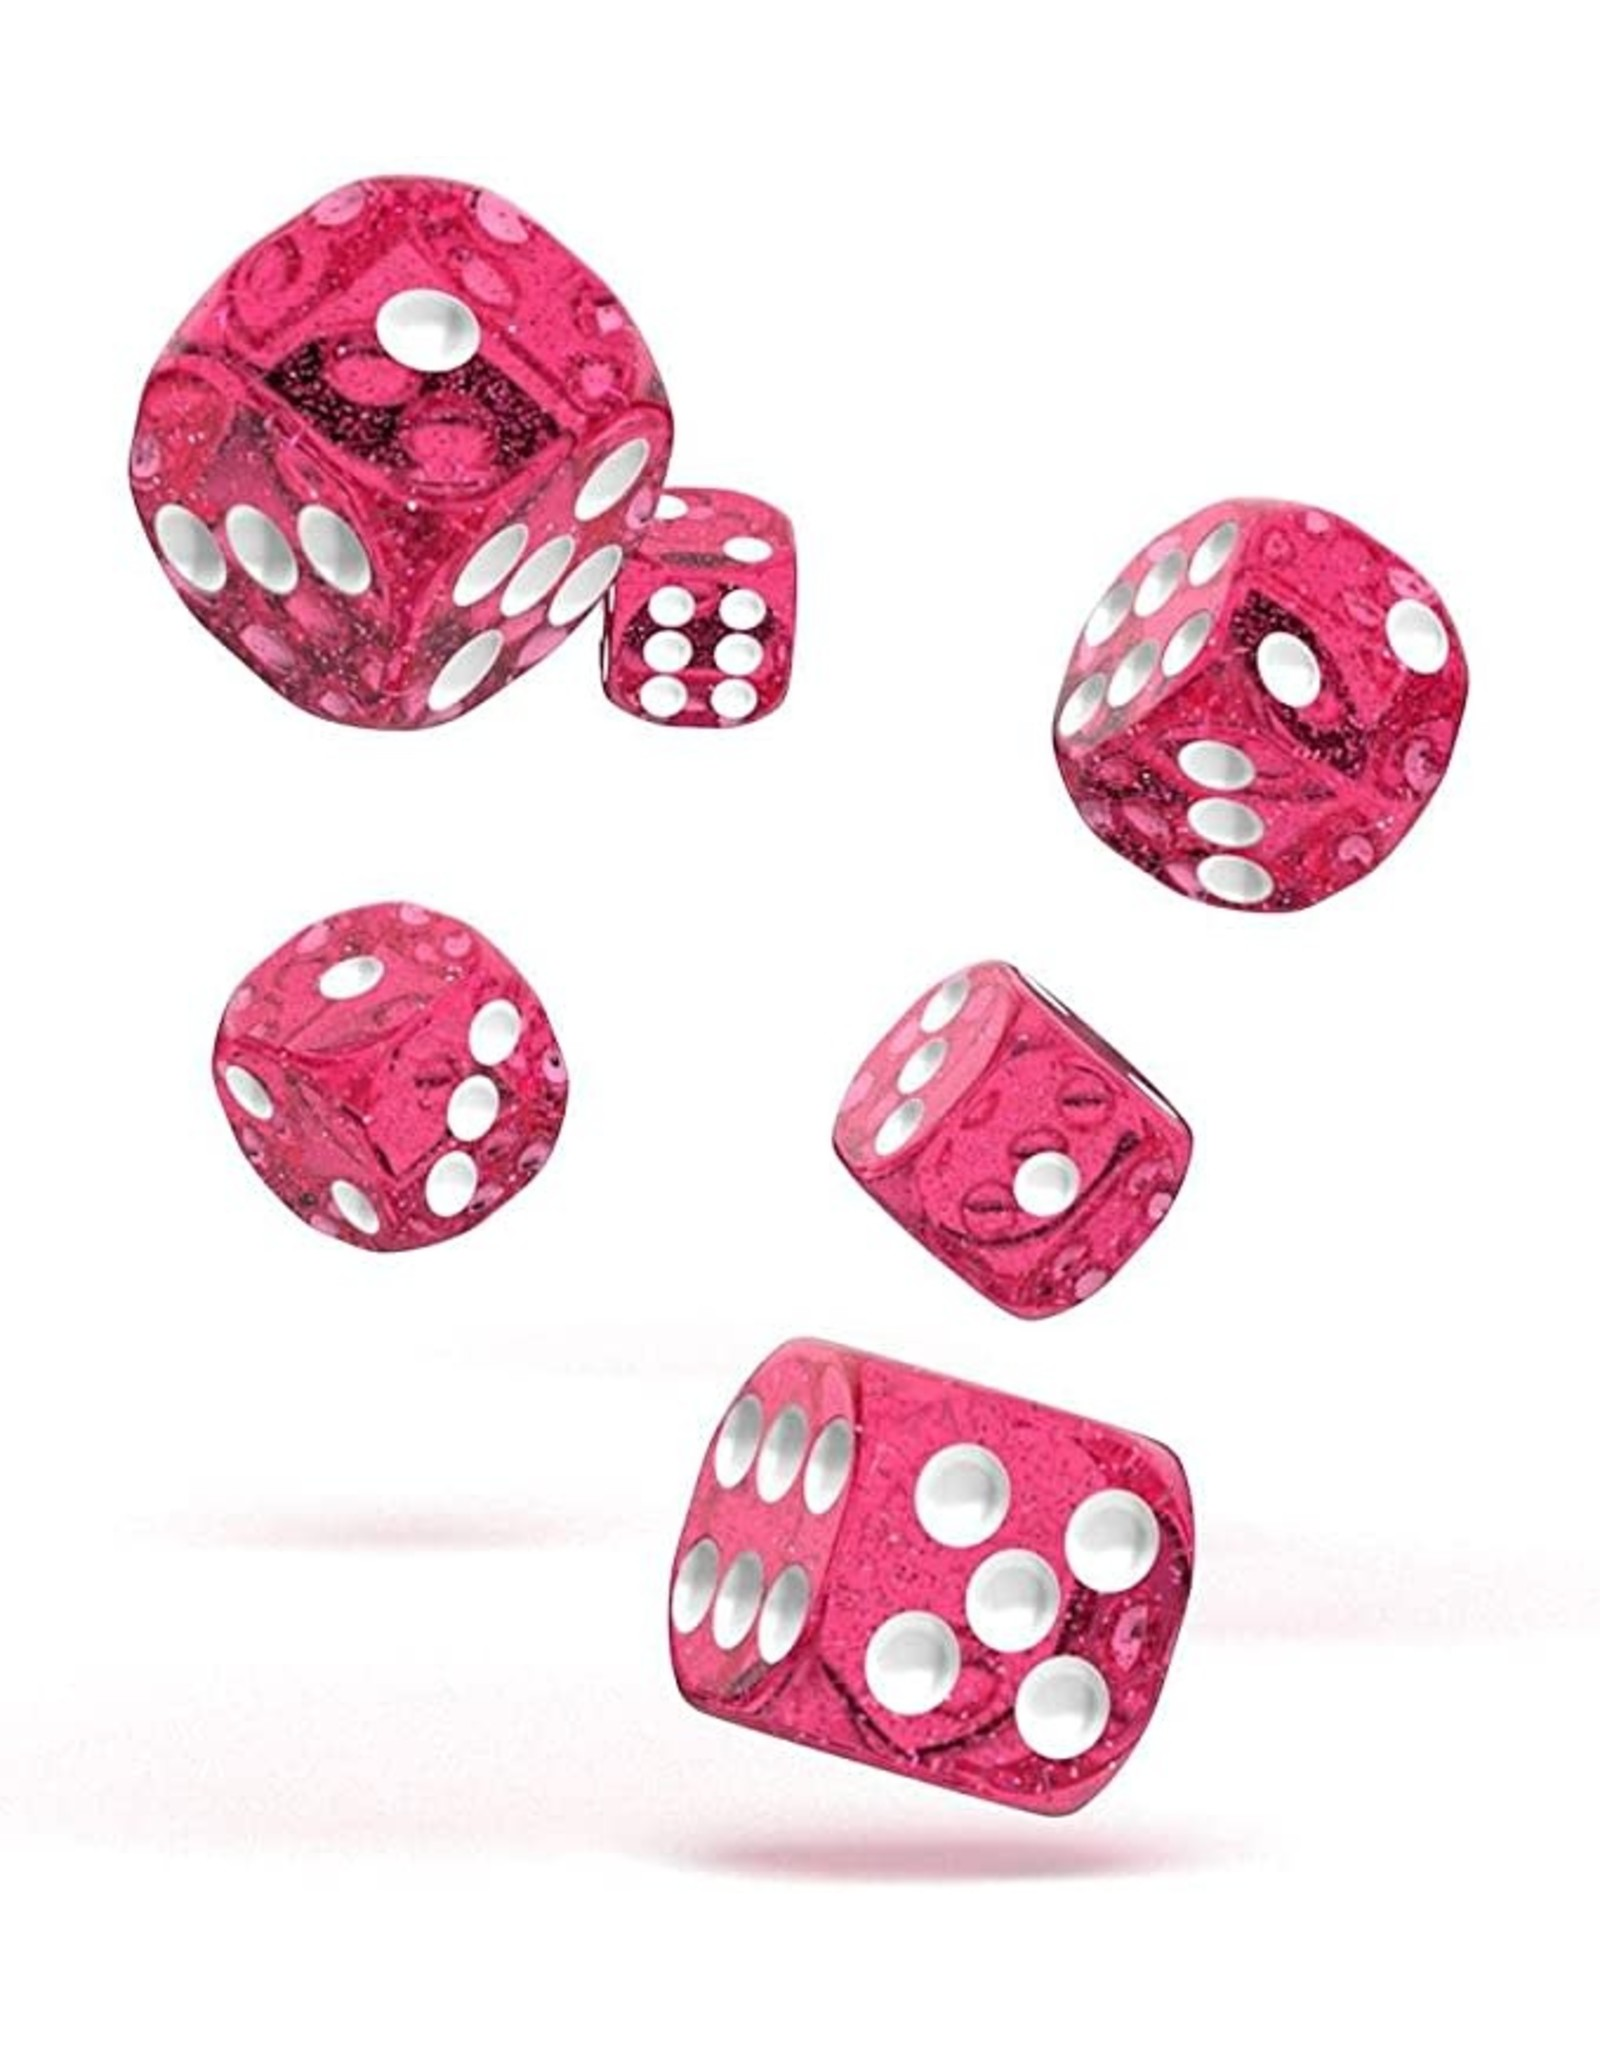 Oakie Doakie Dice G5 OK d6 16mm Speckled Pink